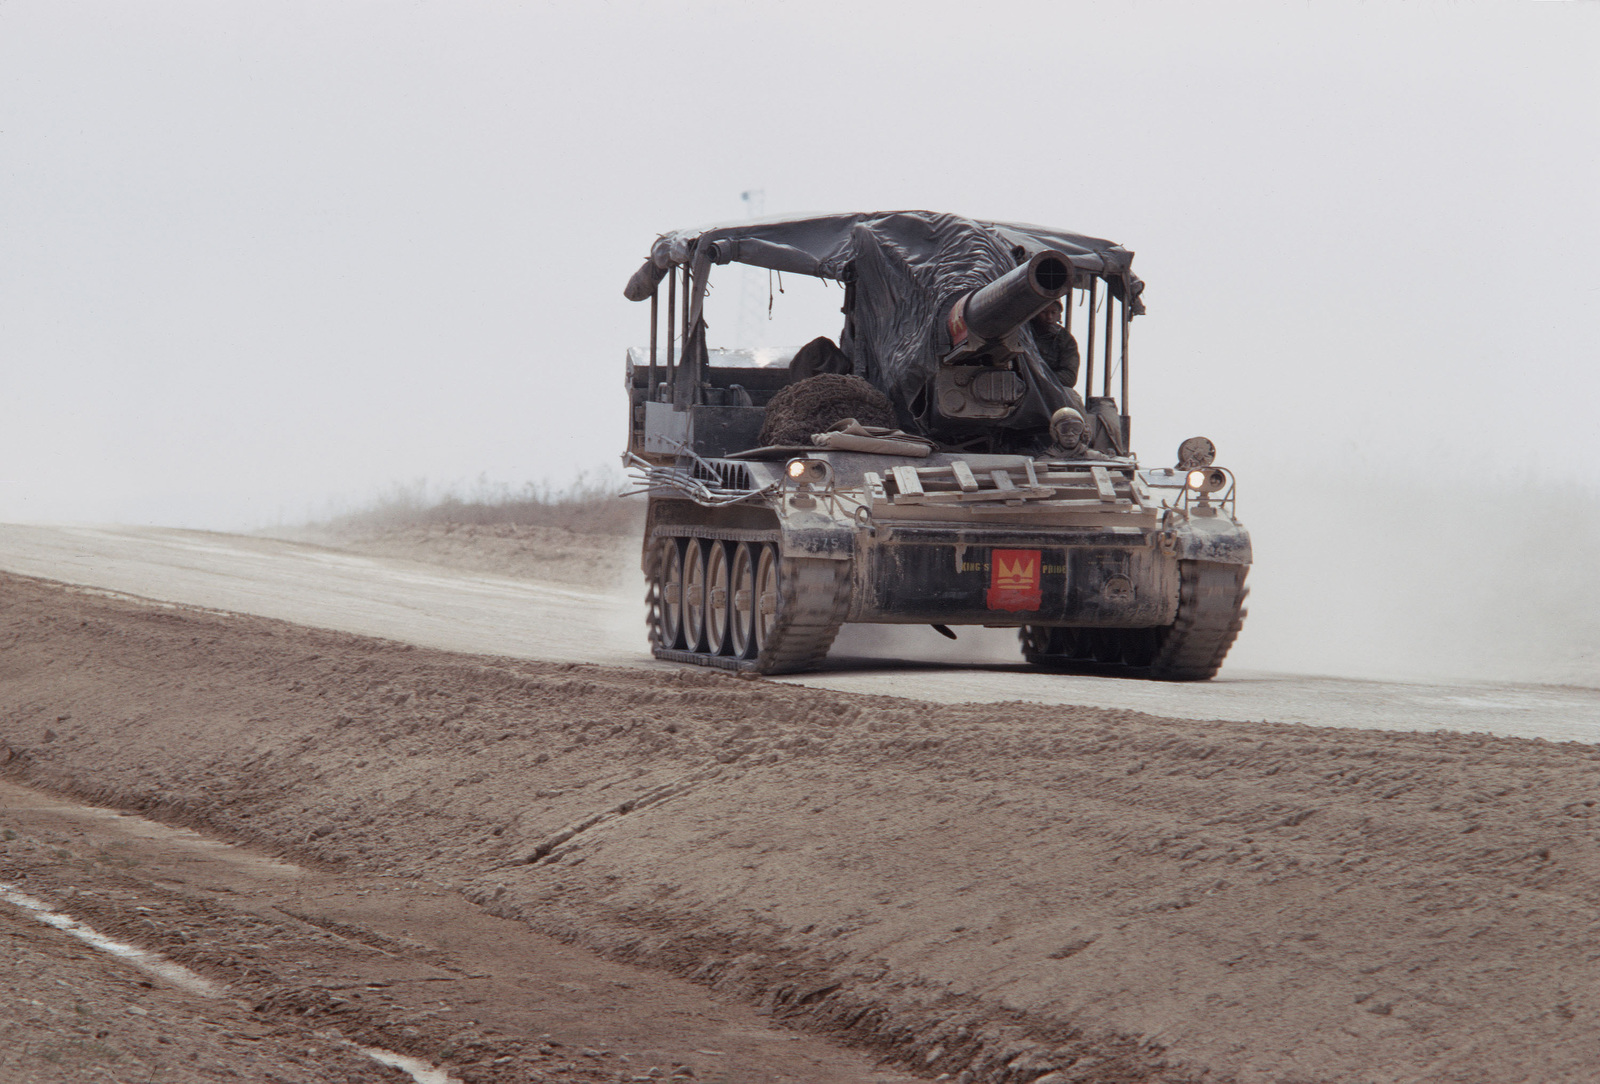 An M110 203 mm (8-inch) self-propelled howitzer moves down a road during a field training exercise